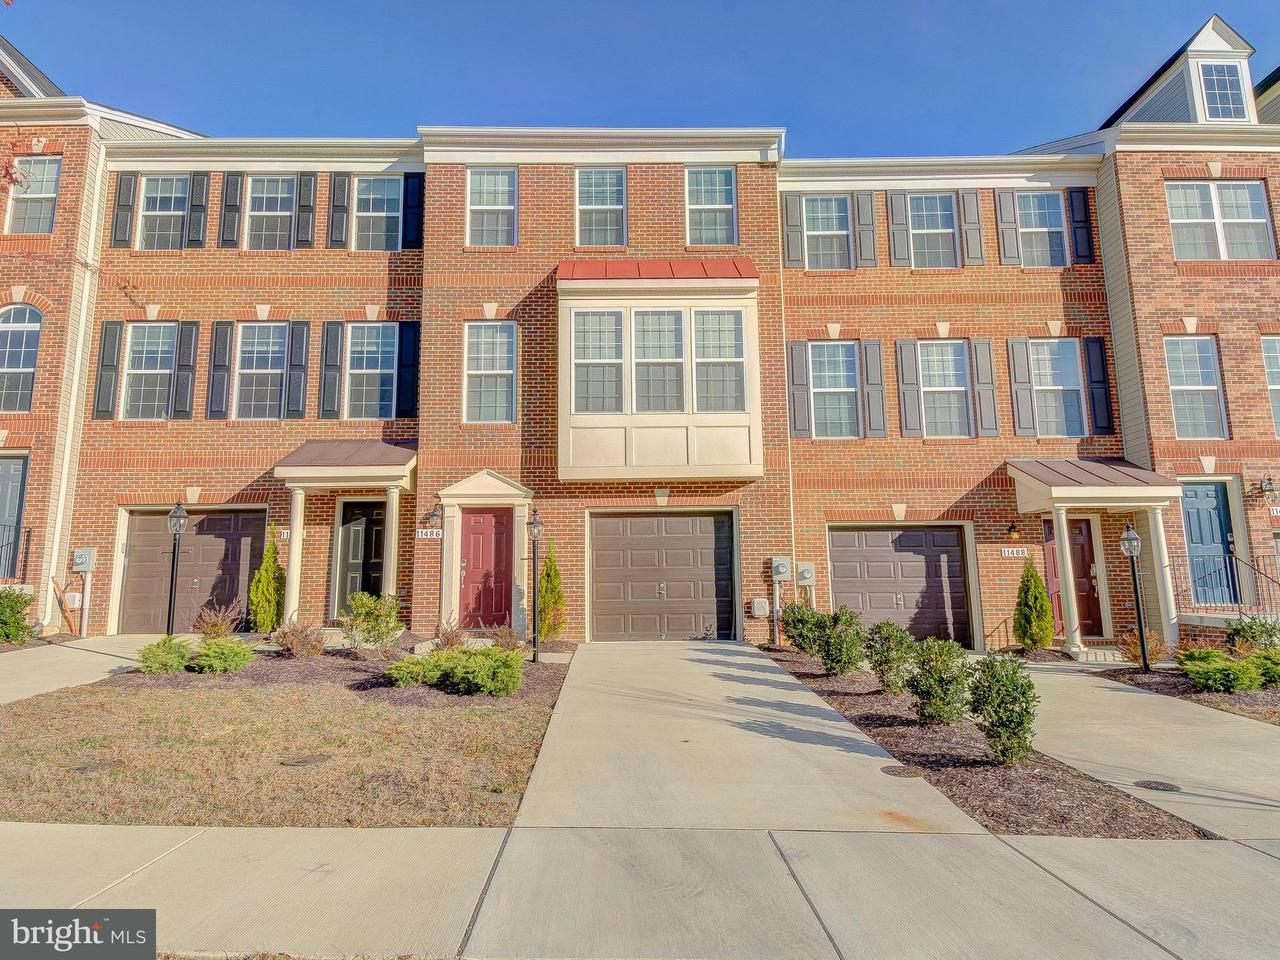 Other Residential for Rent at 11486 Stockport Pl White Plains, Maryland 20695 United States